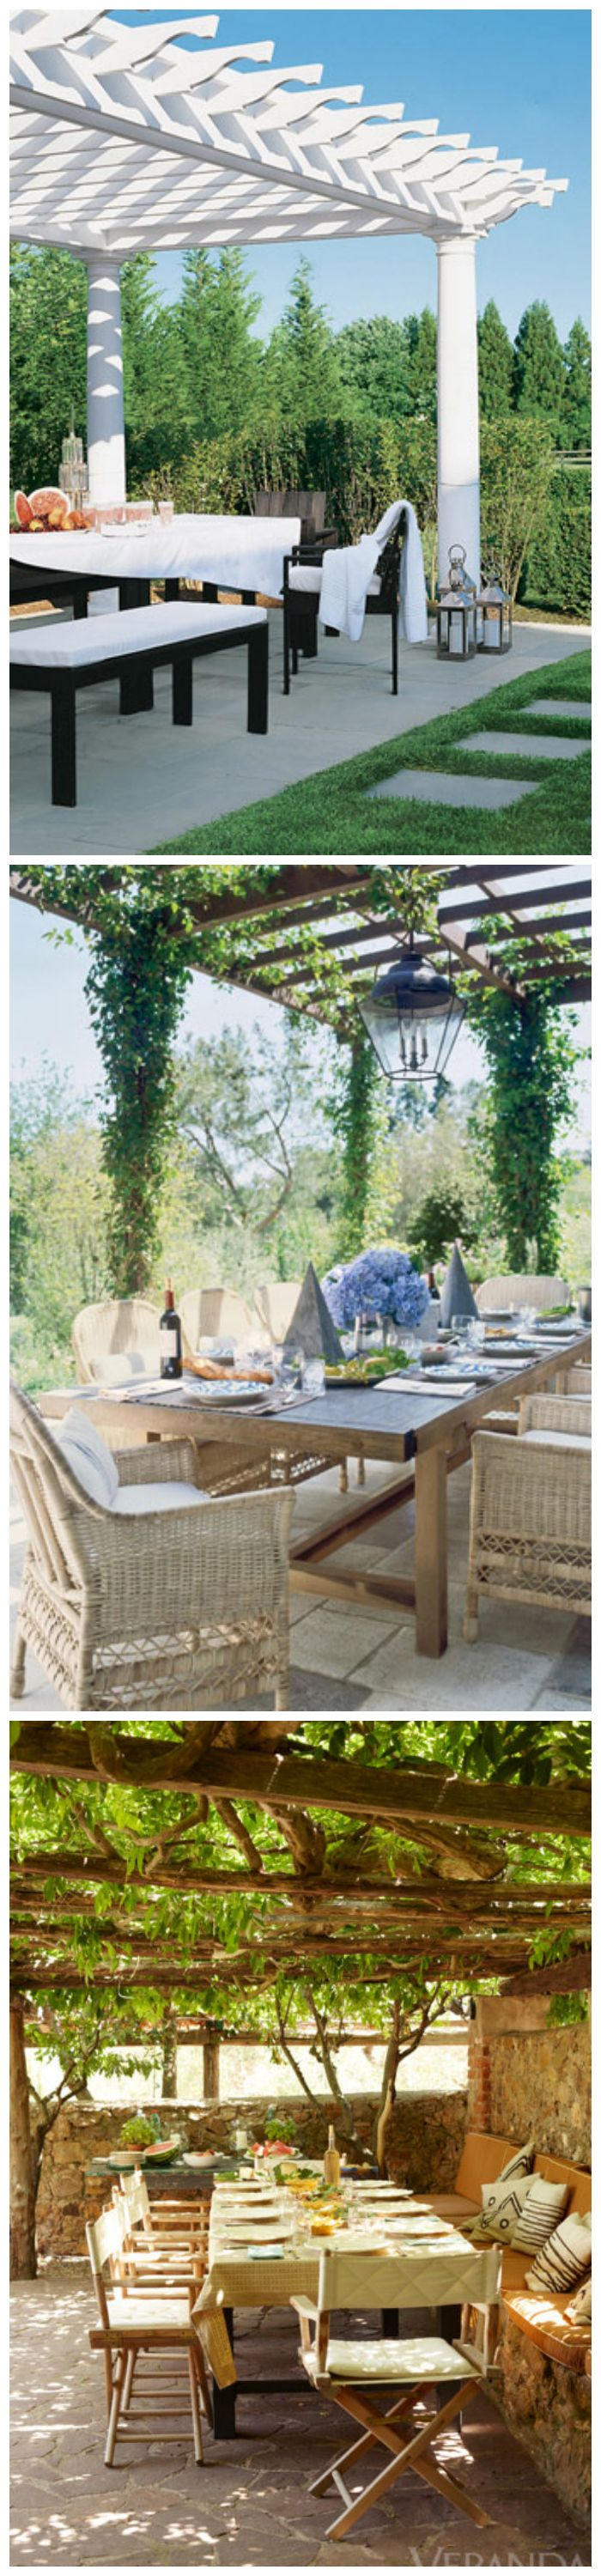 104 best Garden- Arbor / Trellis / Pergola images on Pinterest ... Garden Design Outdoor Dining P E A on